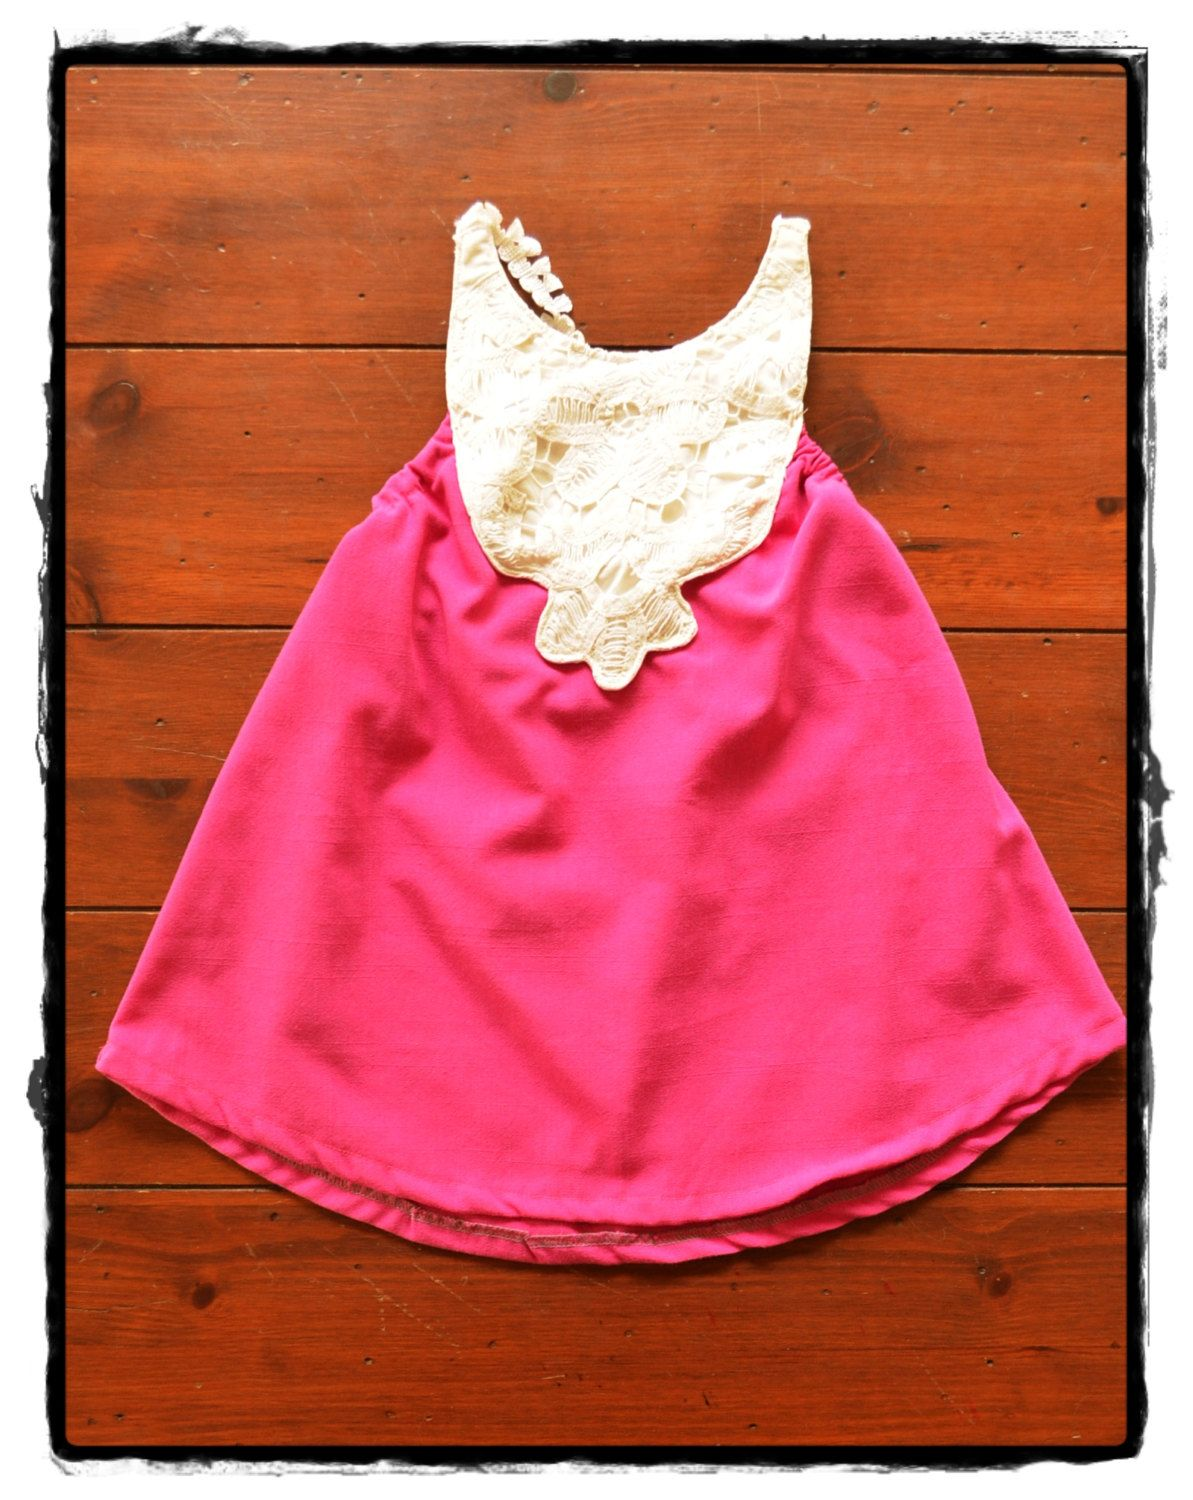 Pink dress baby  Baby toddler girls pink dress with vintage white lace Size m